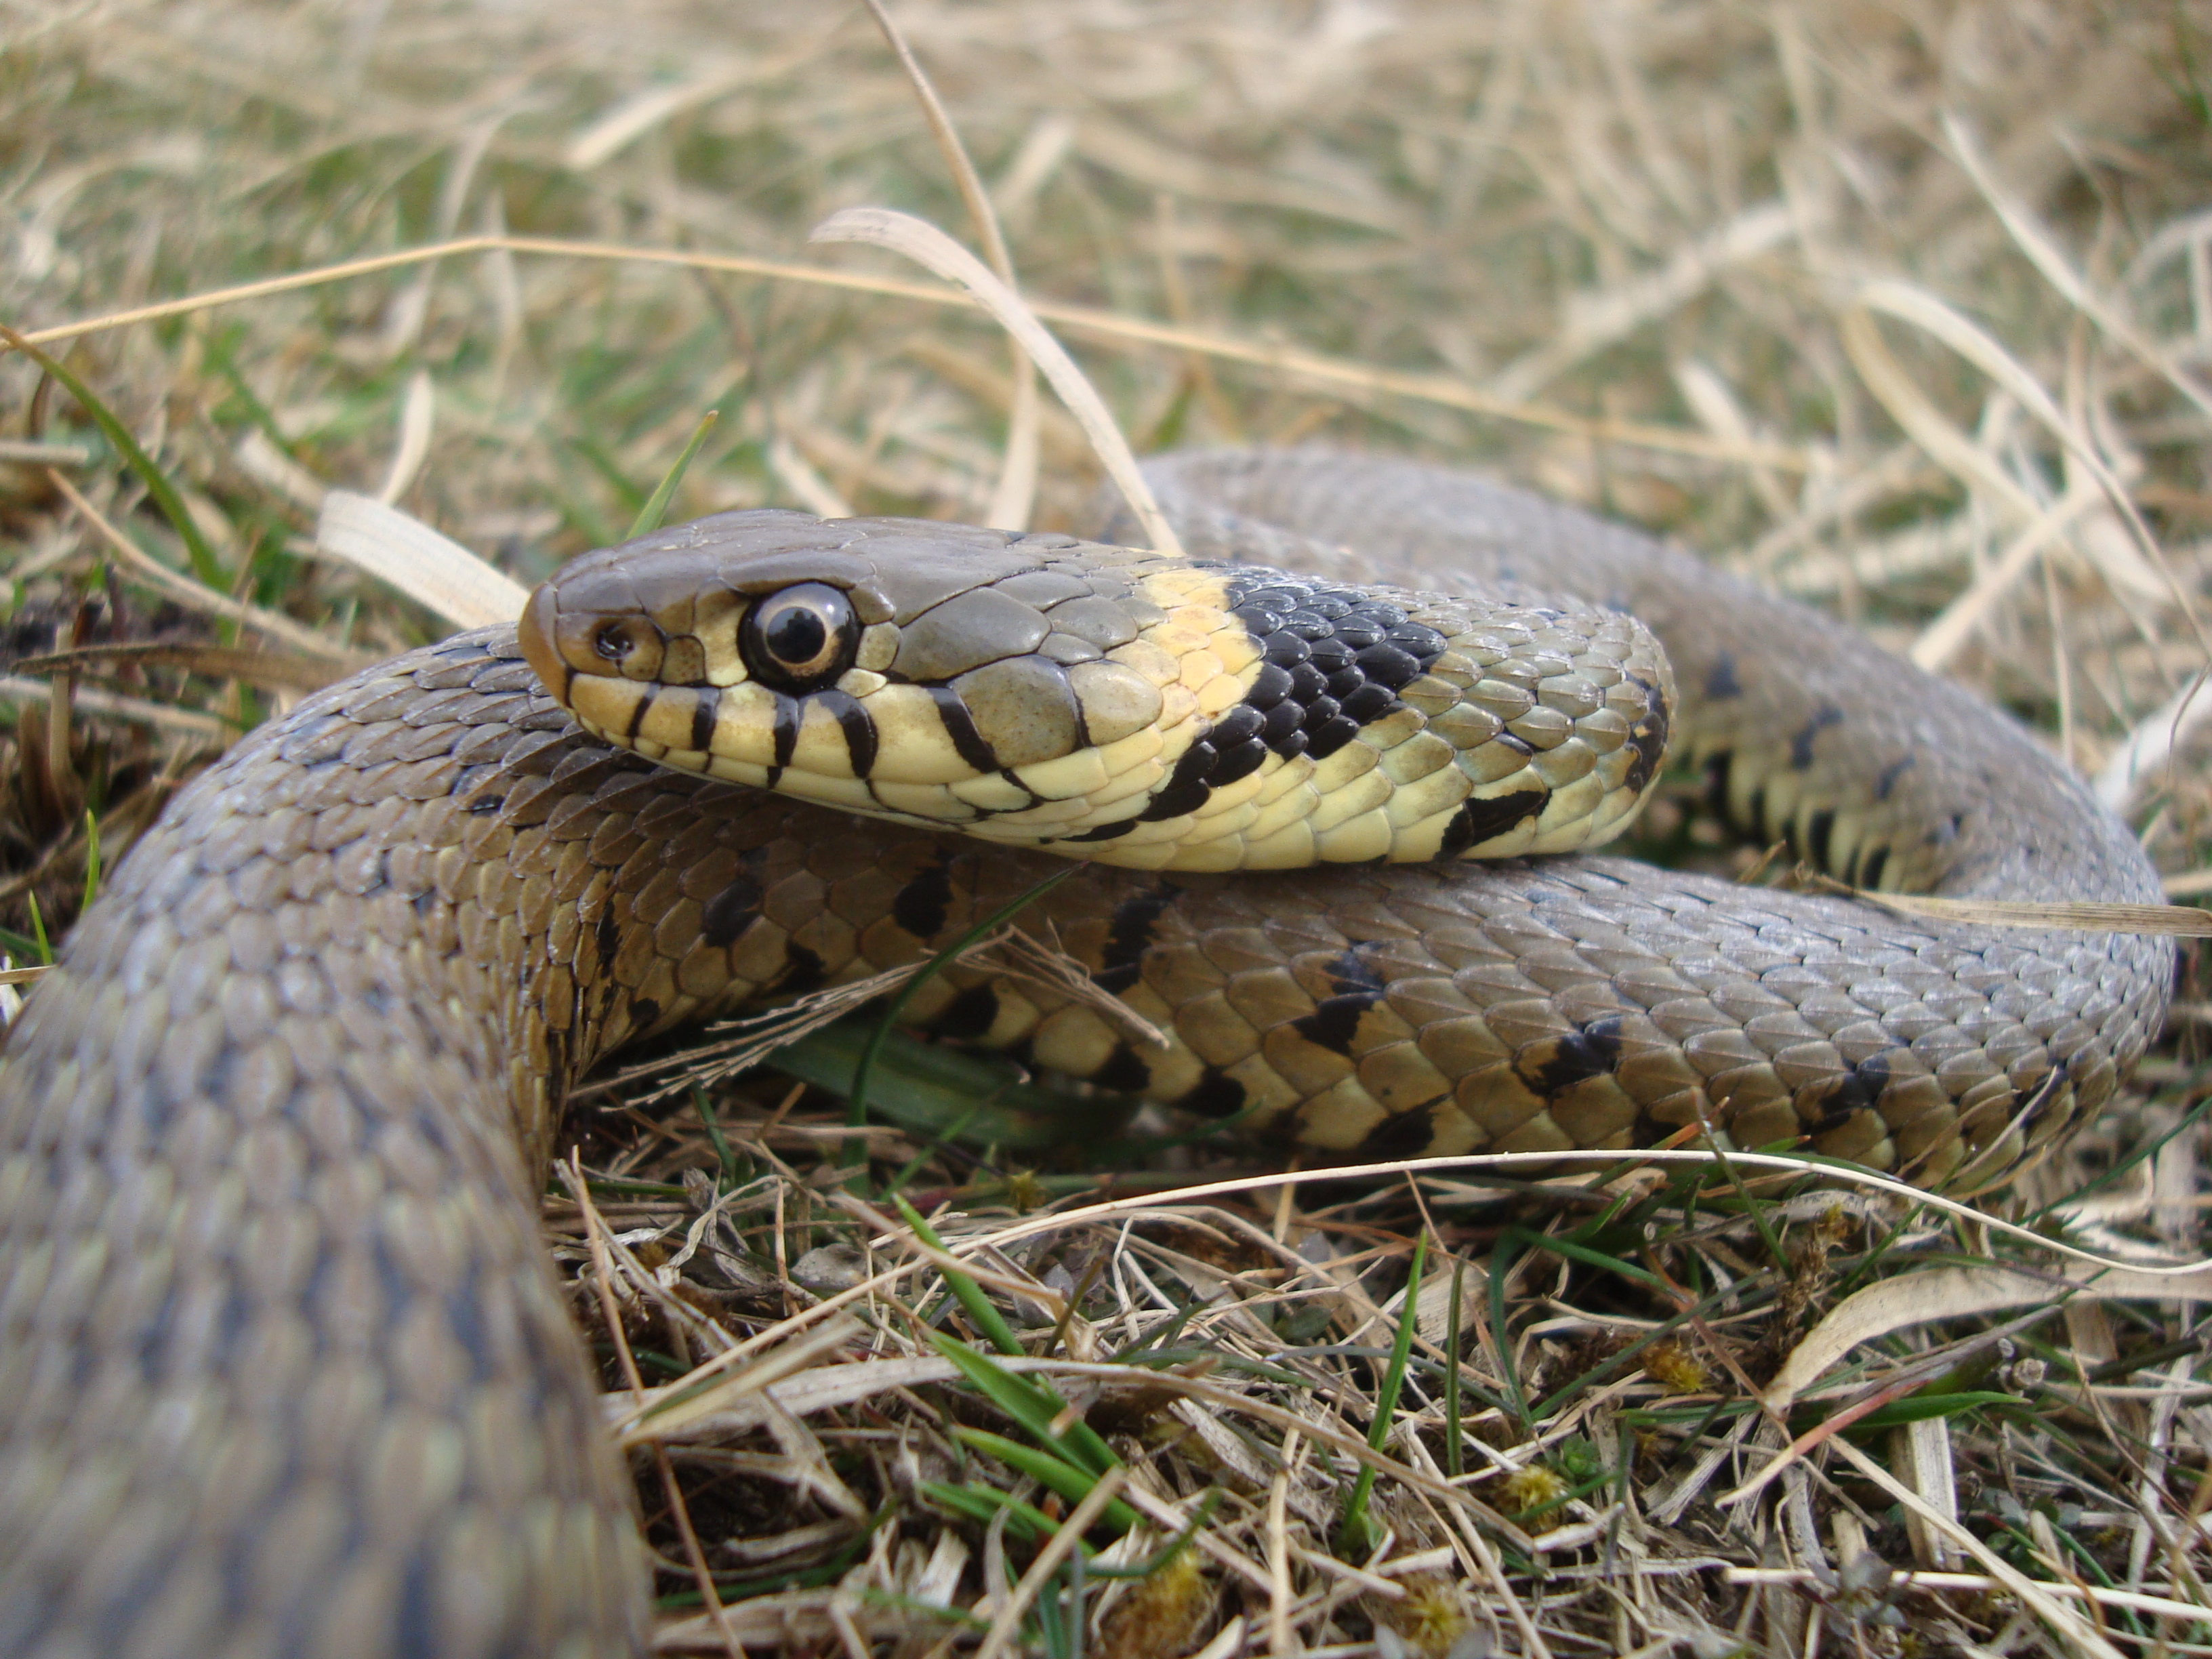 New snake discovered in Scotland - Rob Edwards